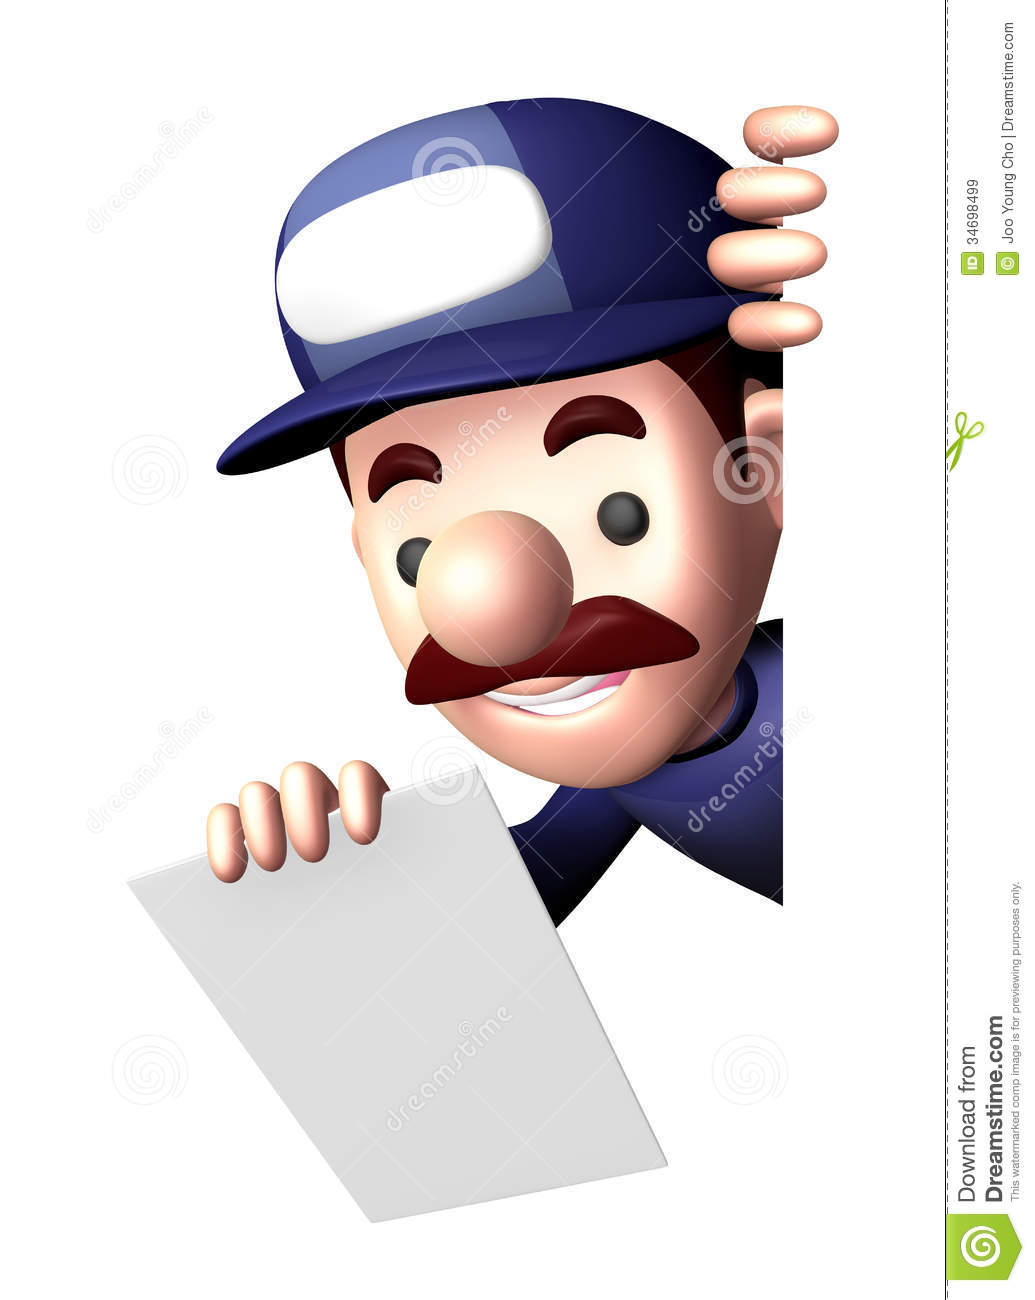 Character Design Jobs : D service man mascot holding a signpost royalty free